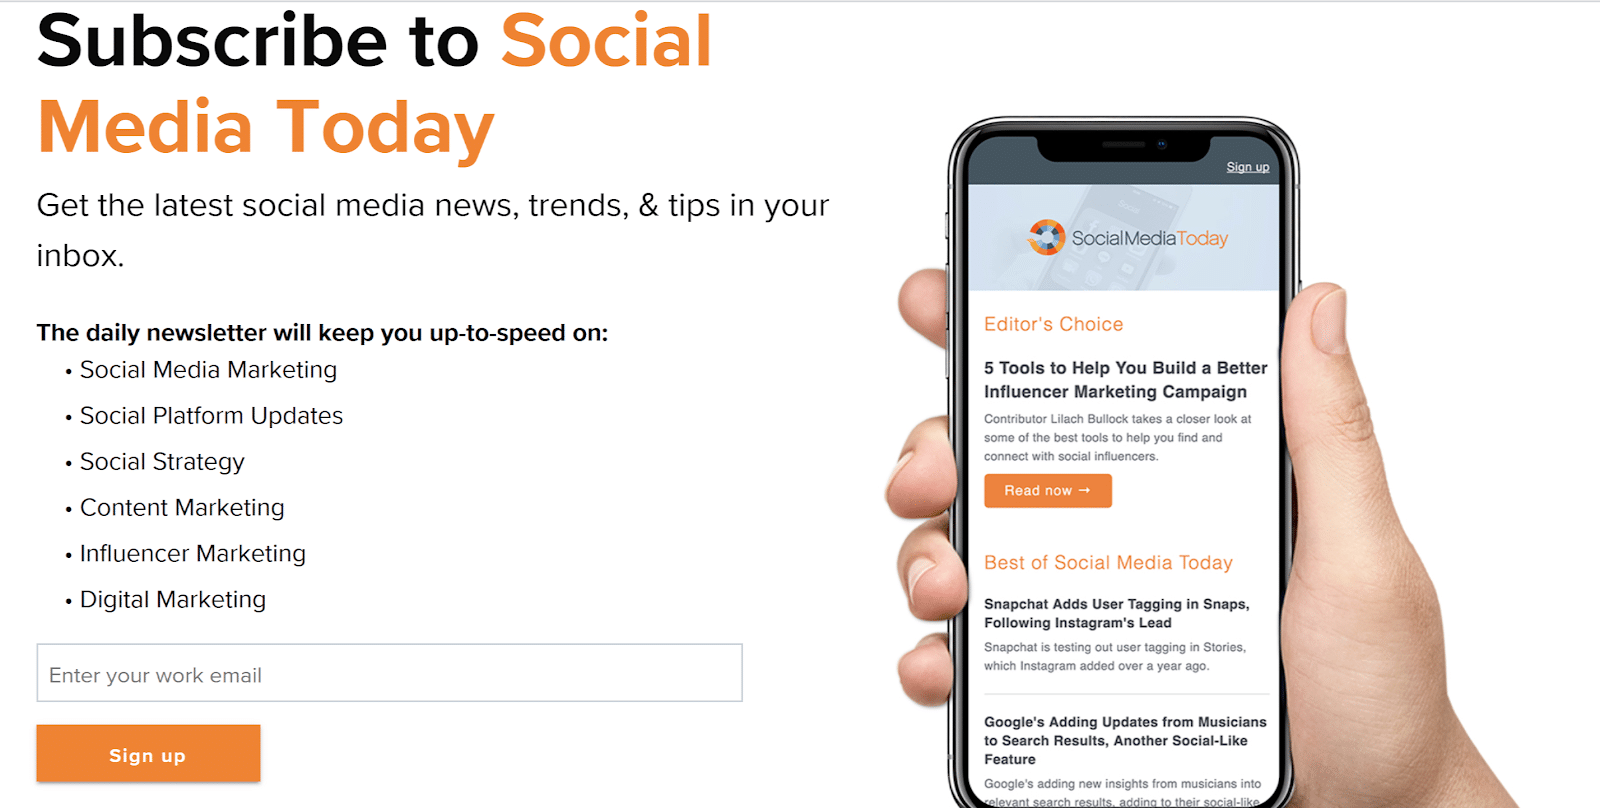 landing page lead gen from Social Media Today